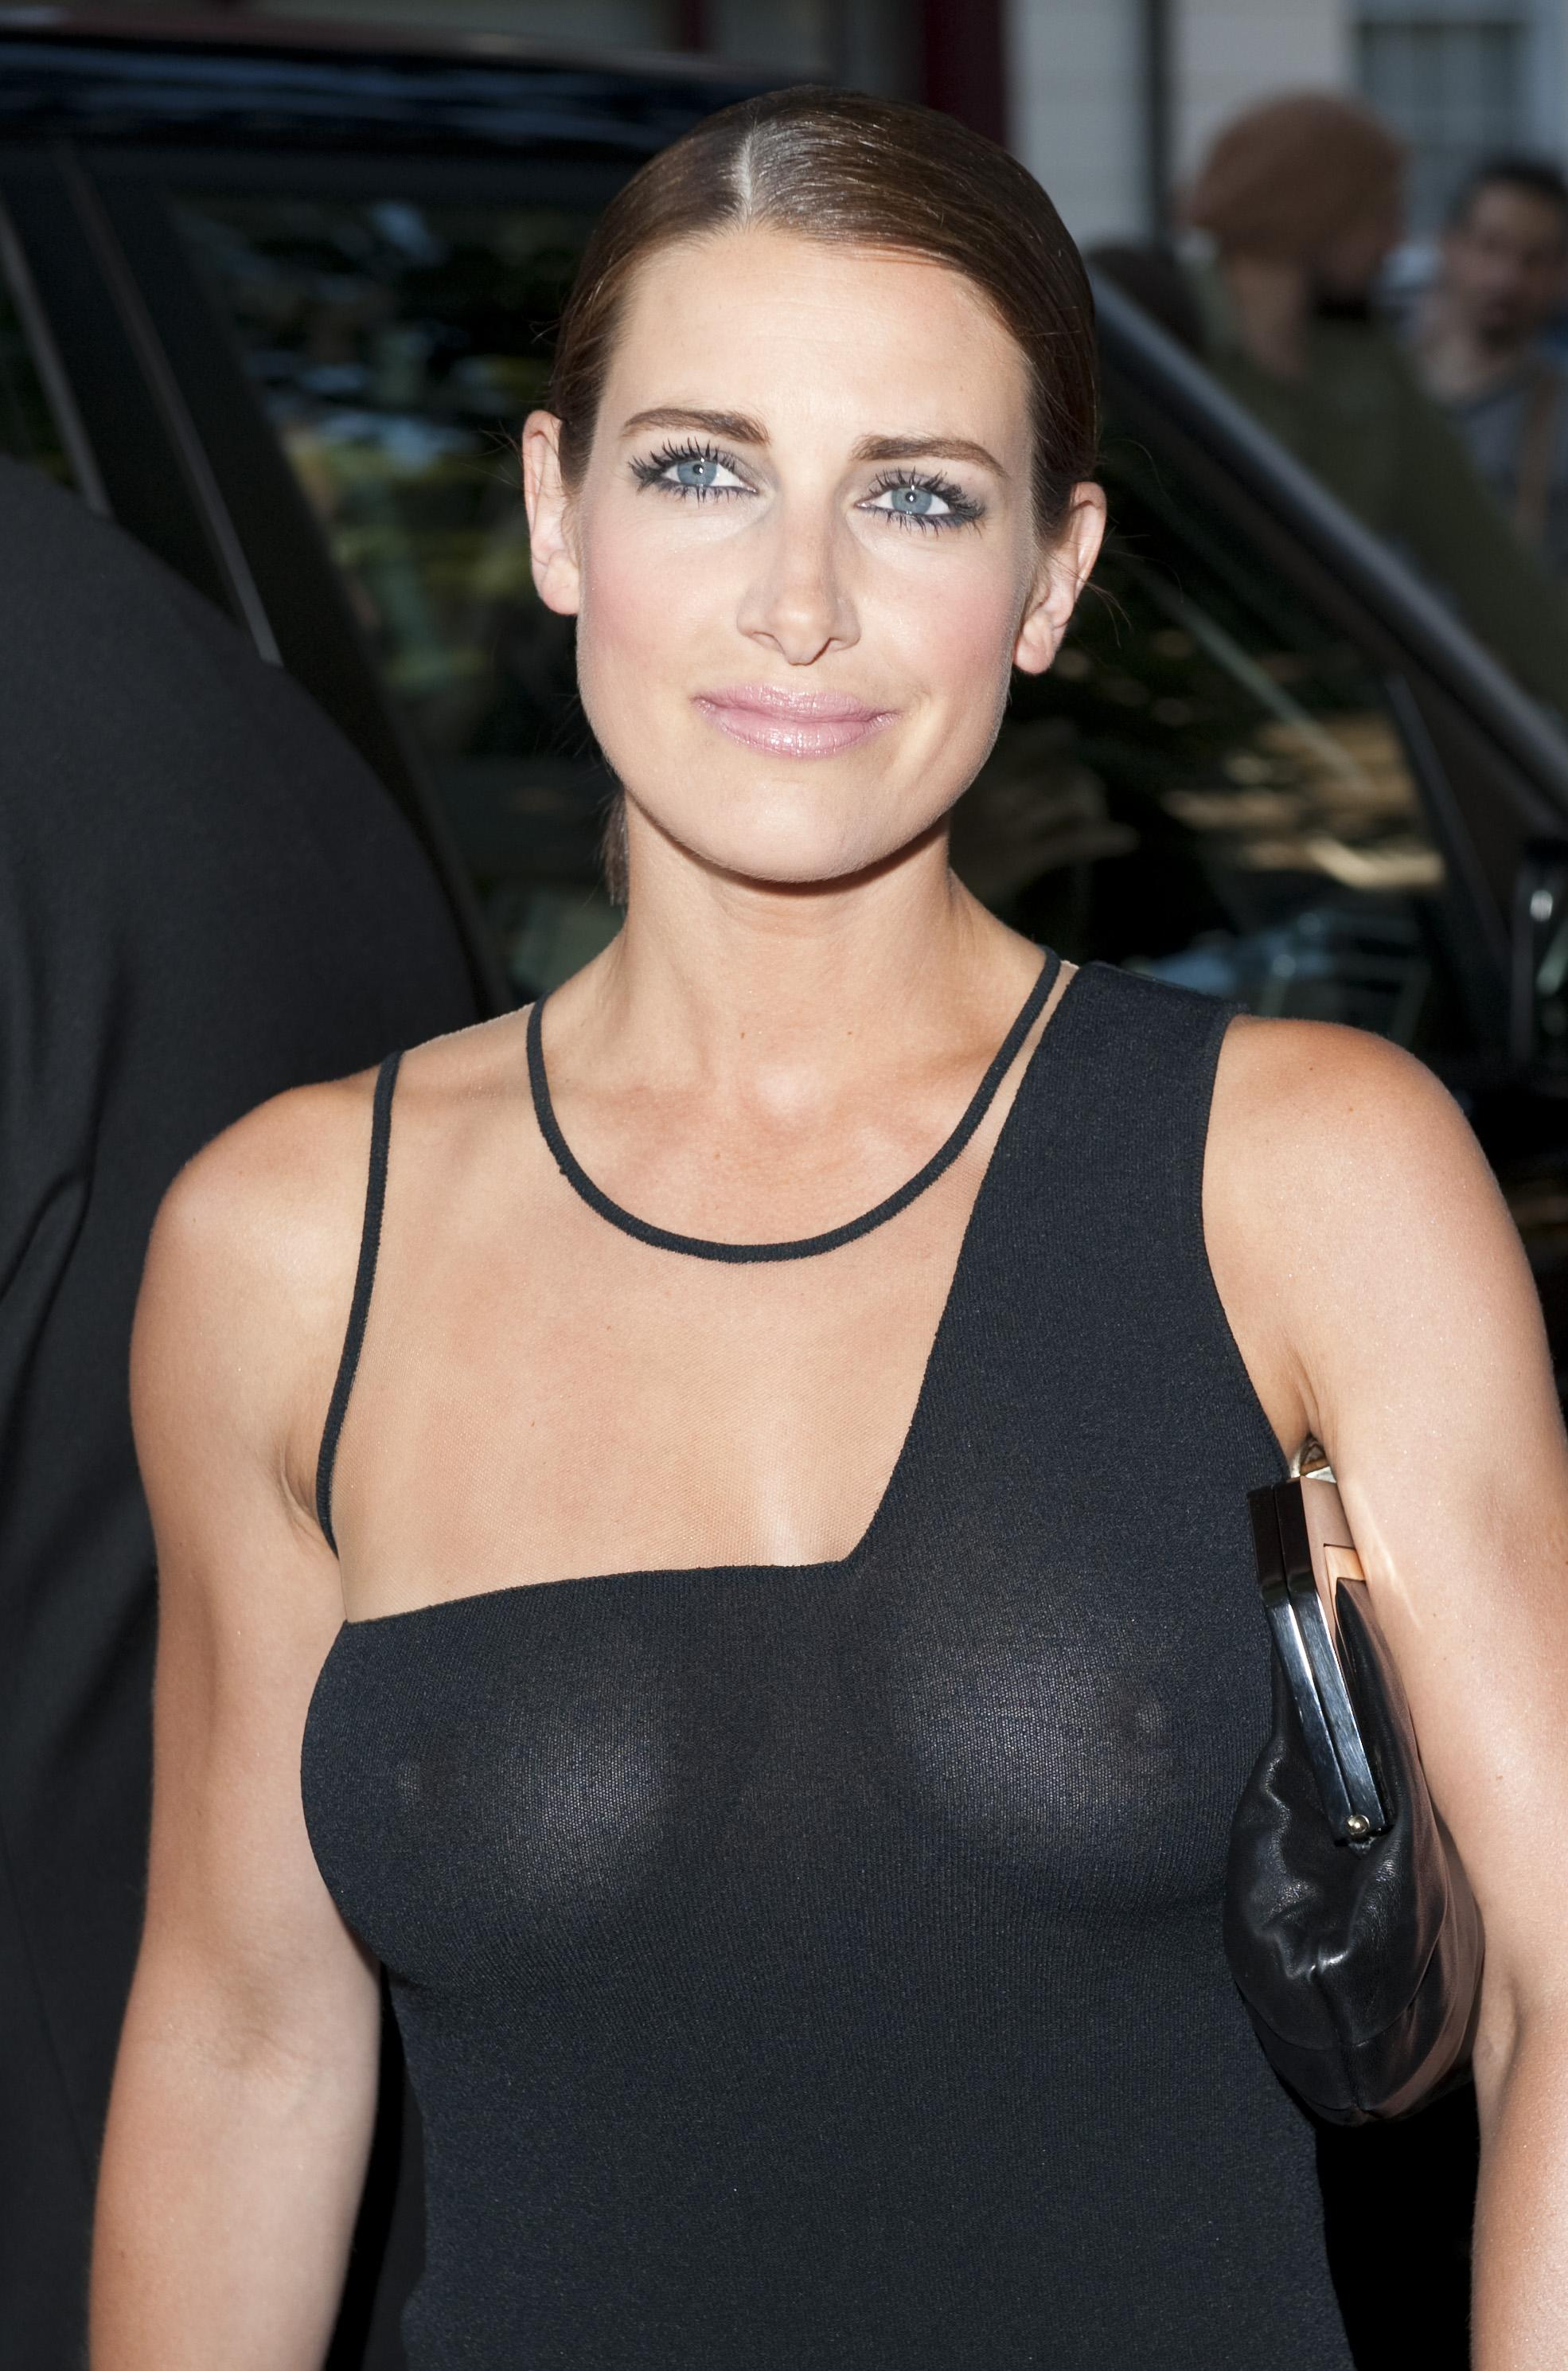 Kirsty Gallacher will not be at the Masters for the second straight year